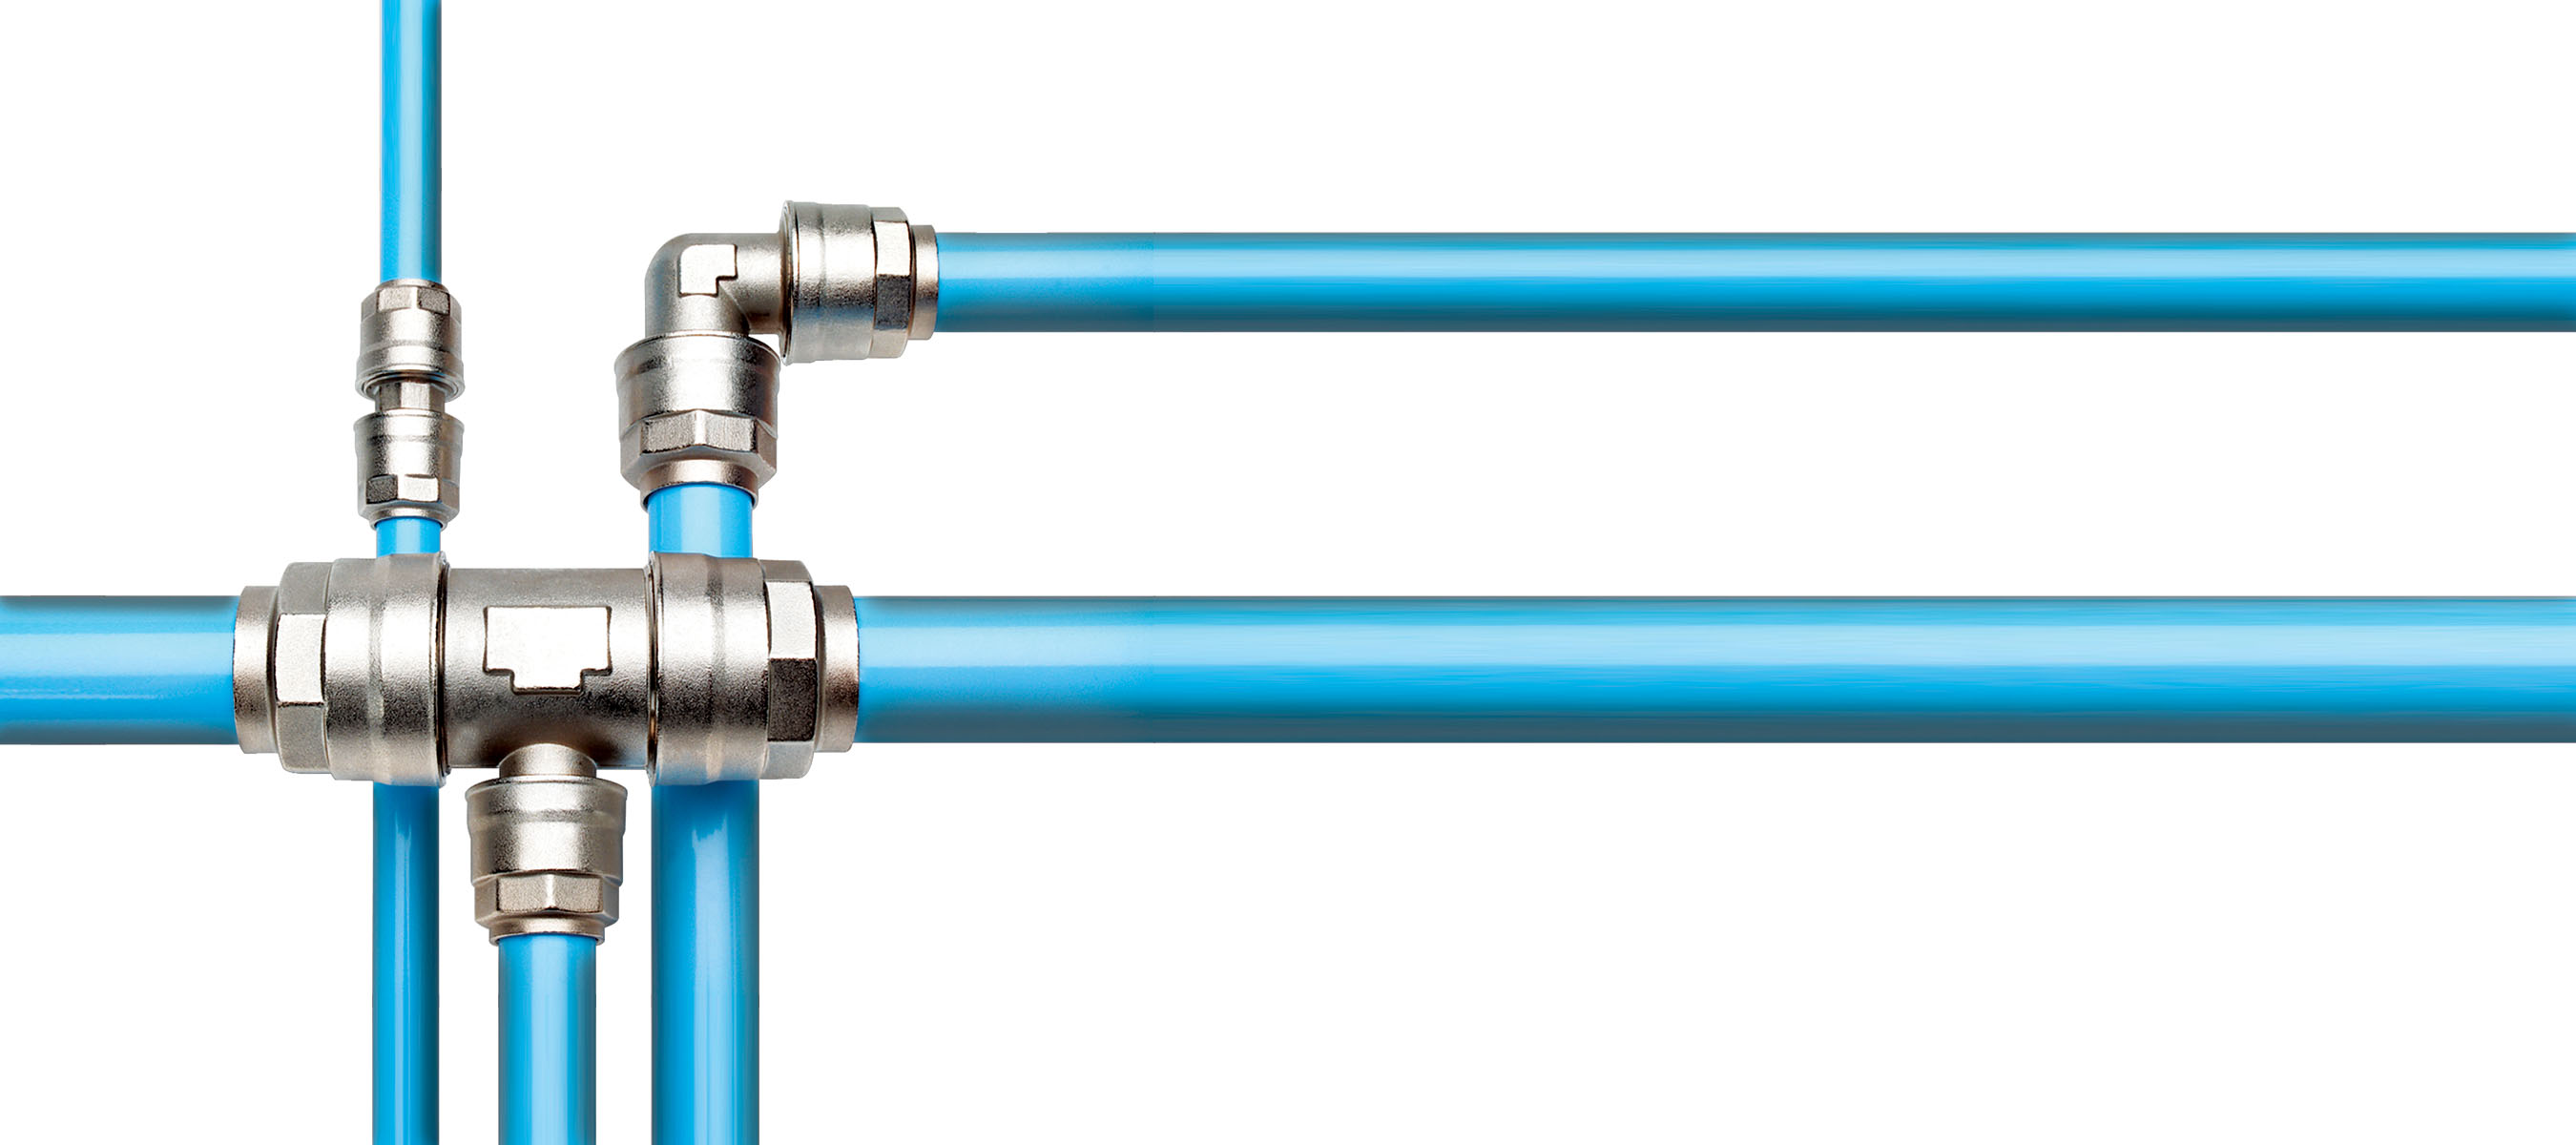 Blue pipes give additional visibility when compared to large amounts of plumbing